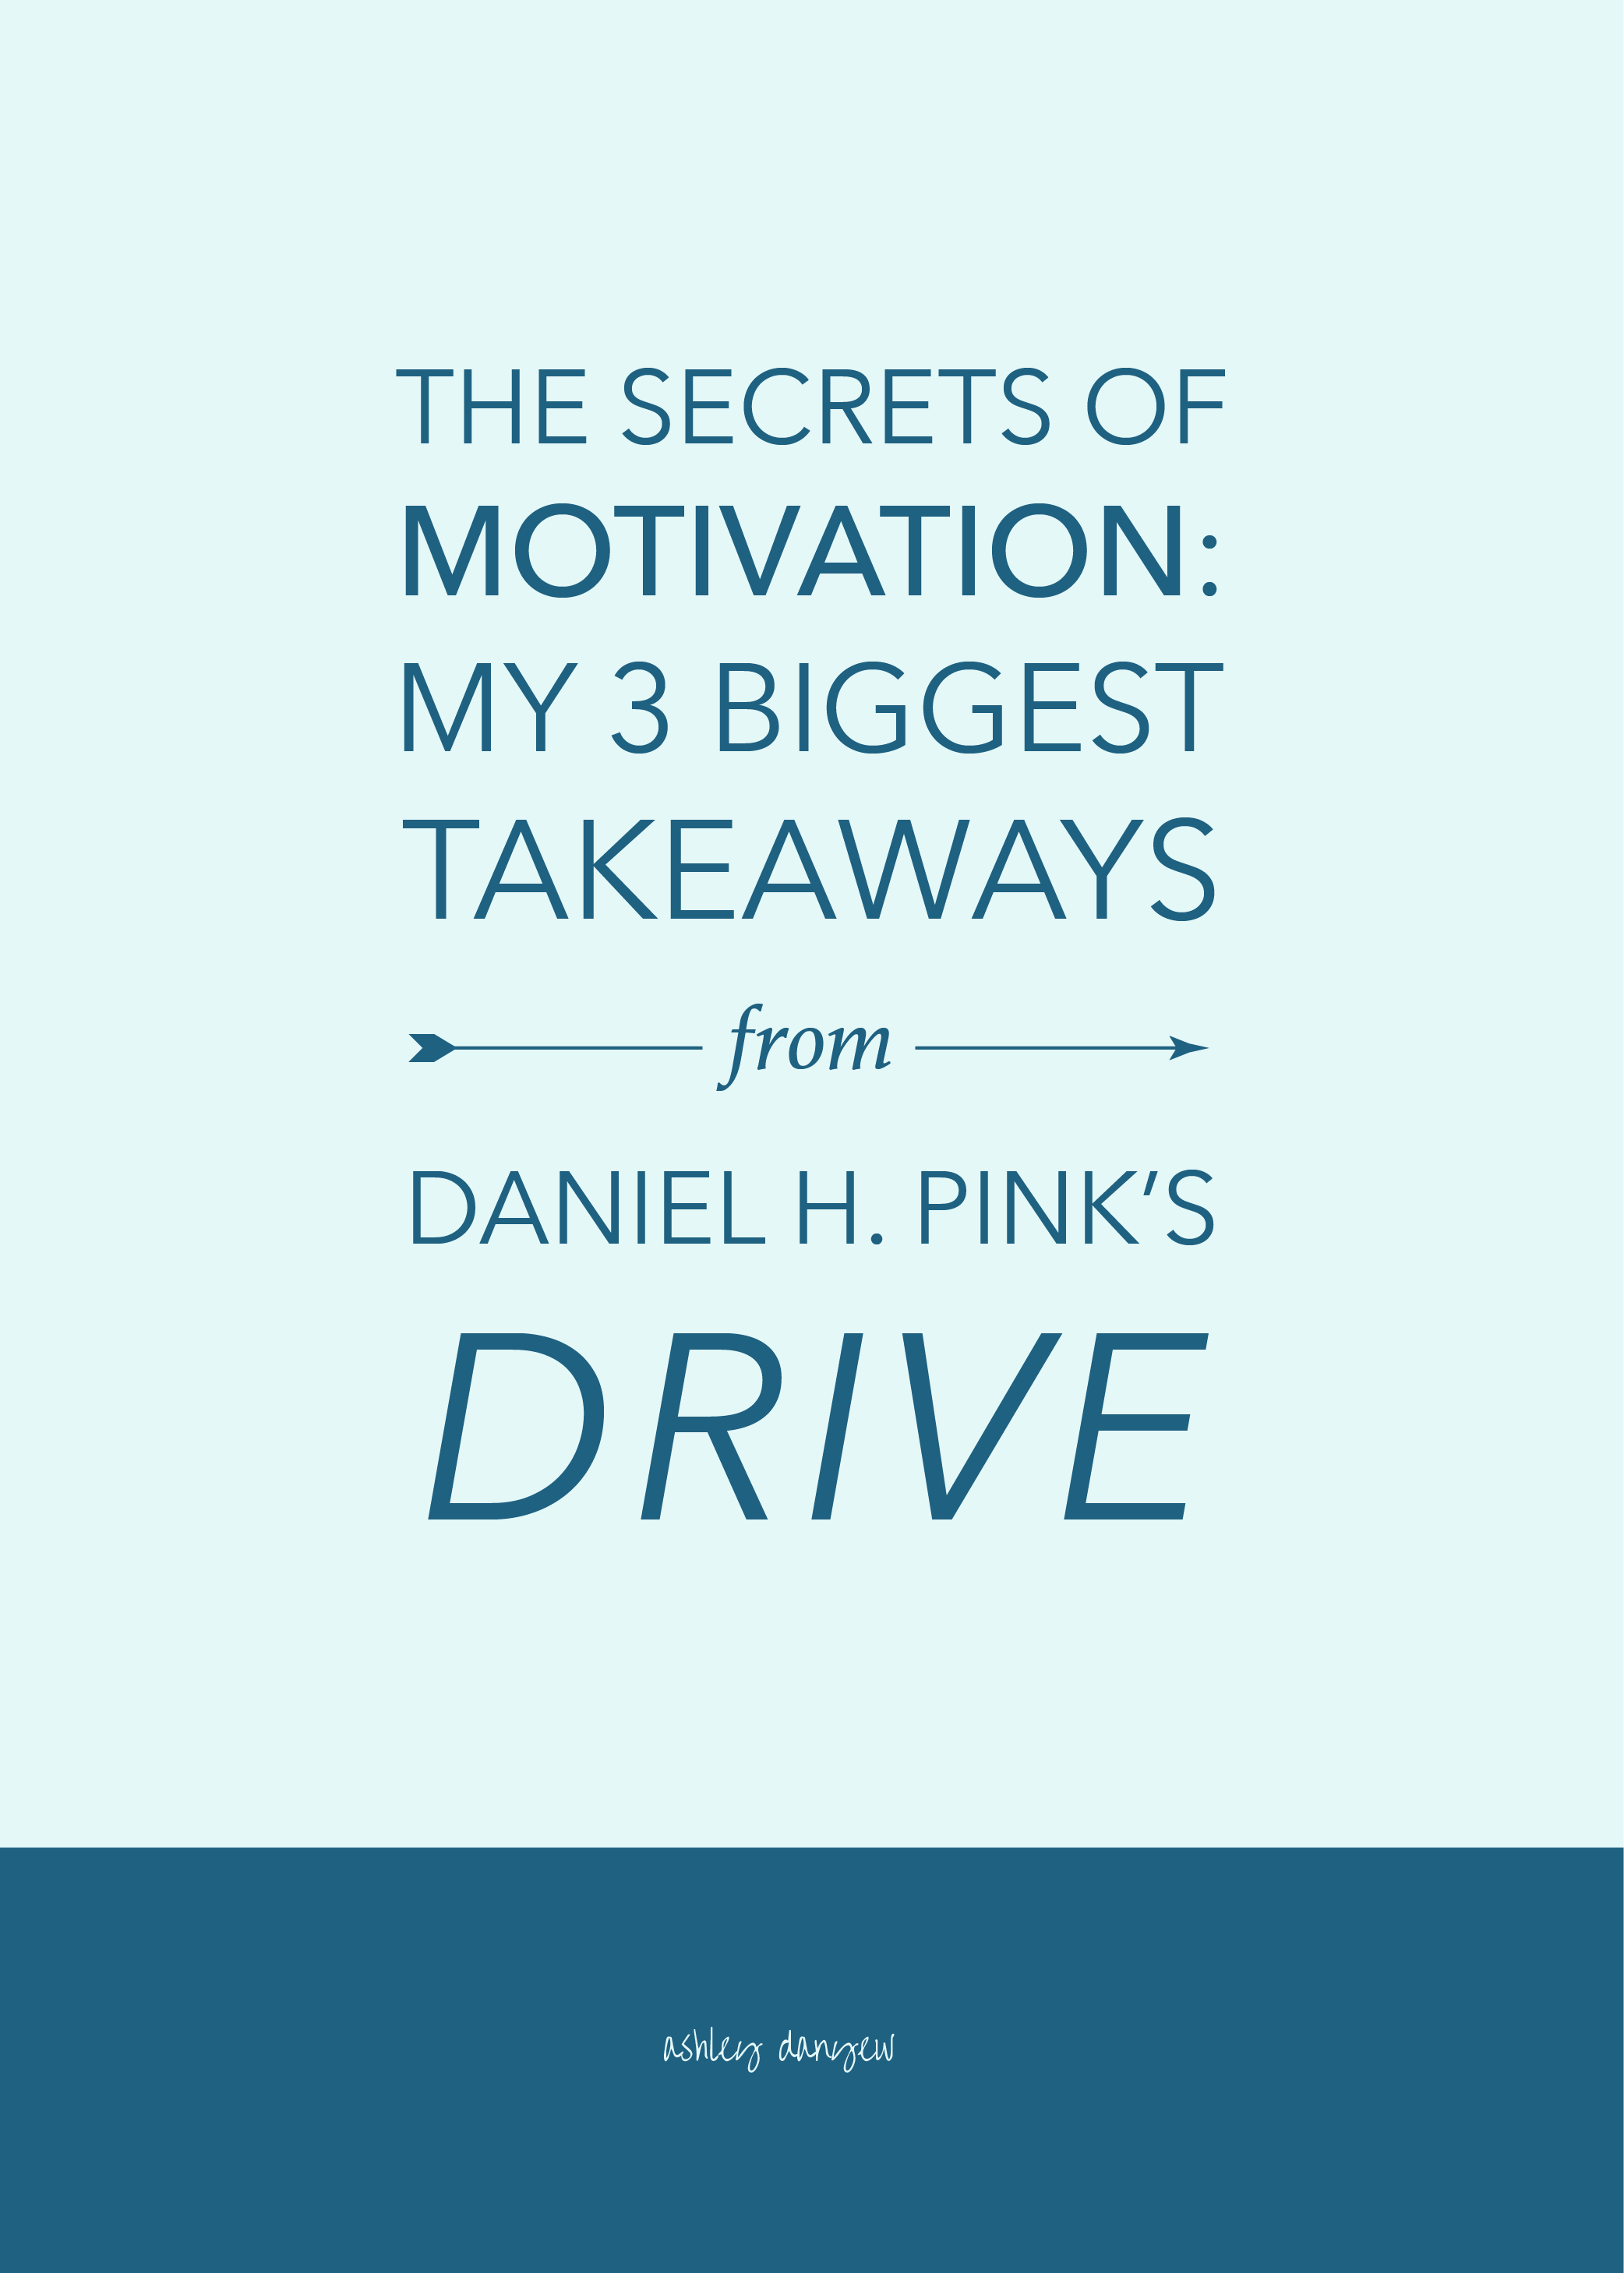 Copy of The Secrets of Motivation: My 3 Biggest Takeaways from Daniel H. Pink's Drive